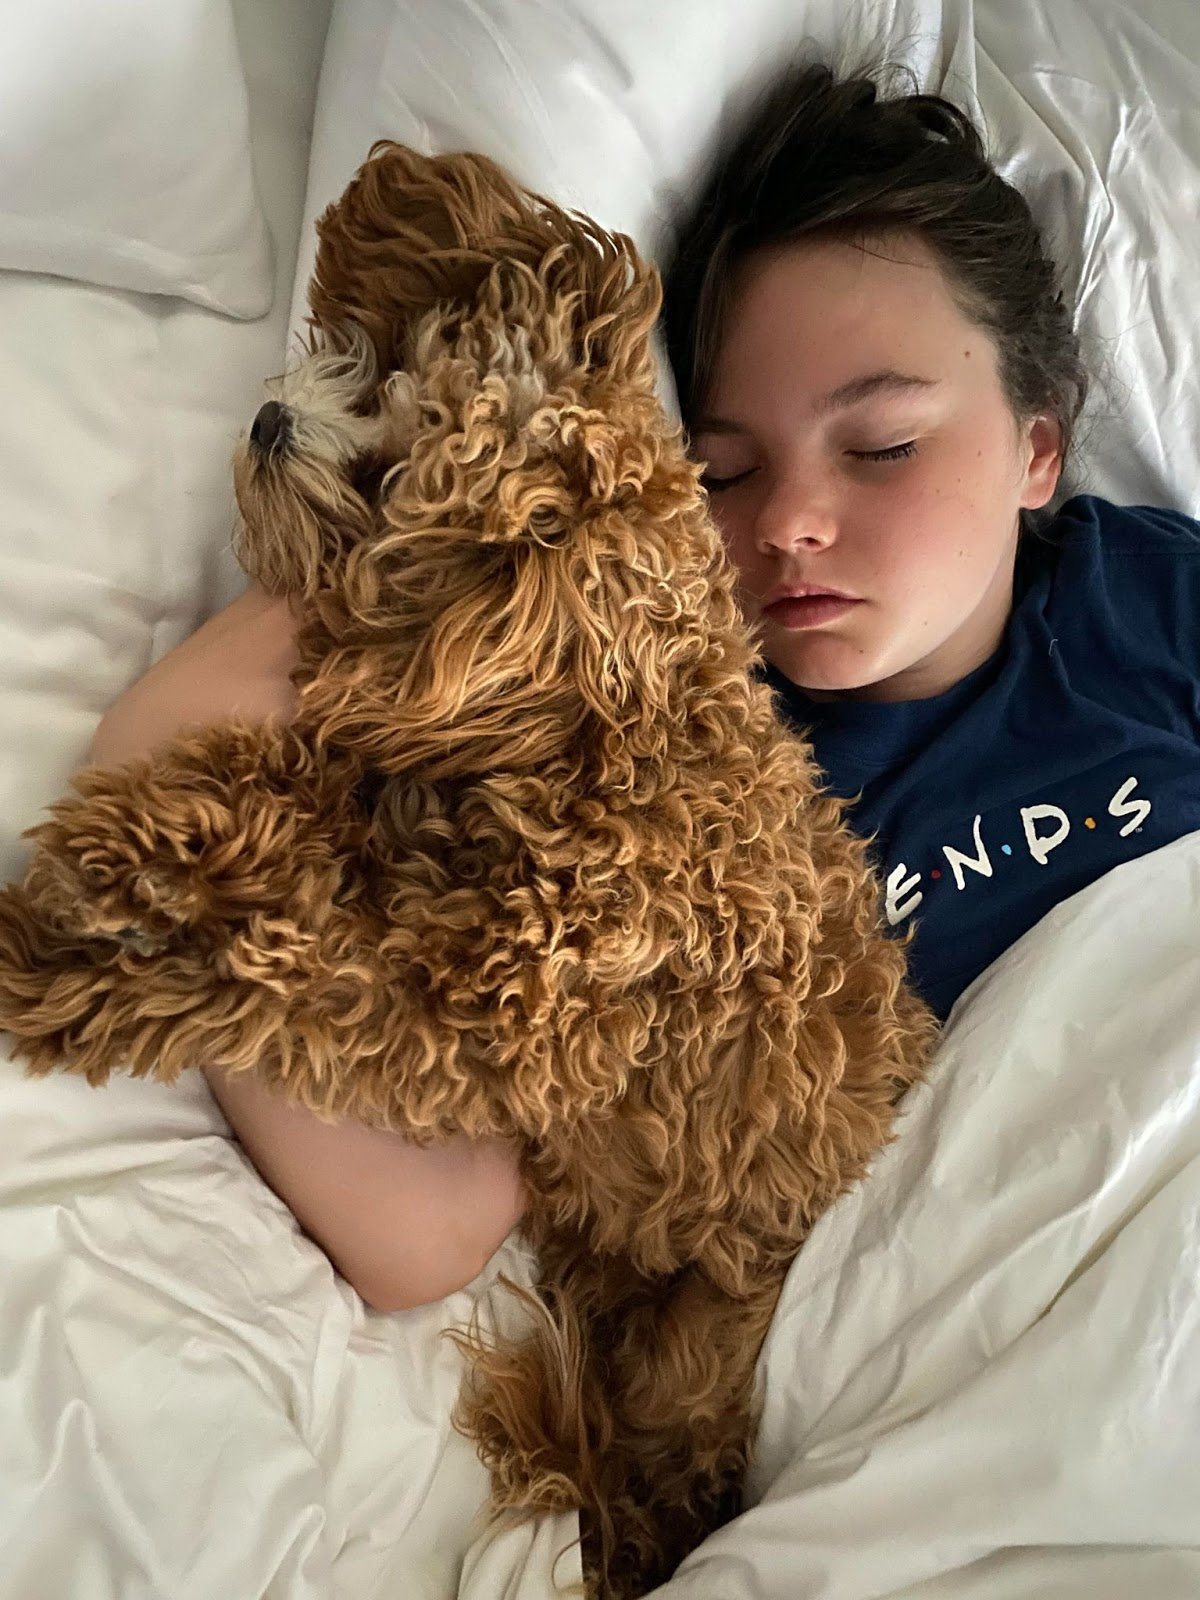 Angela's daughter and fluffy brown puppy asleep